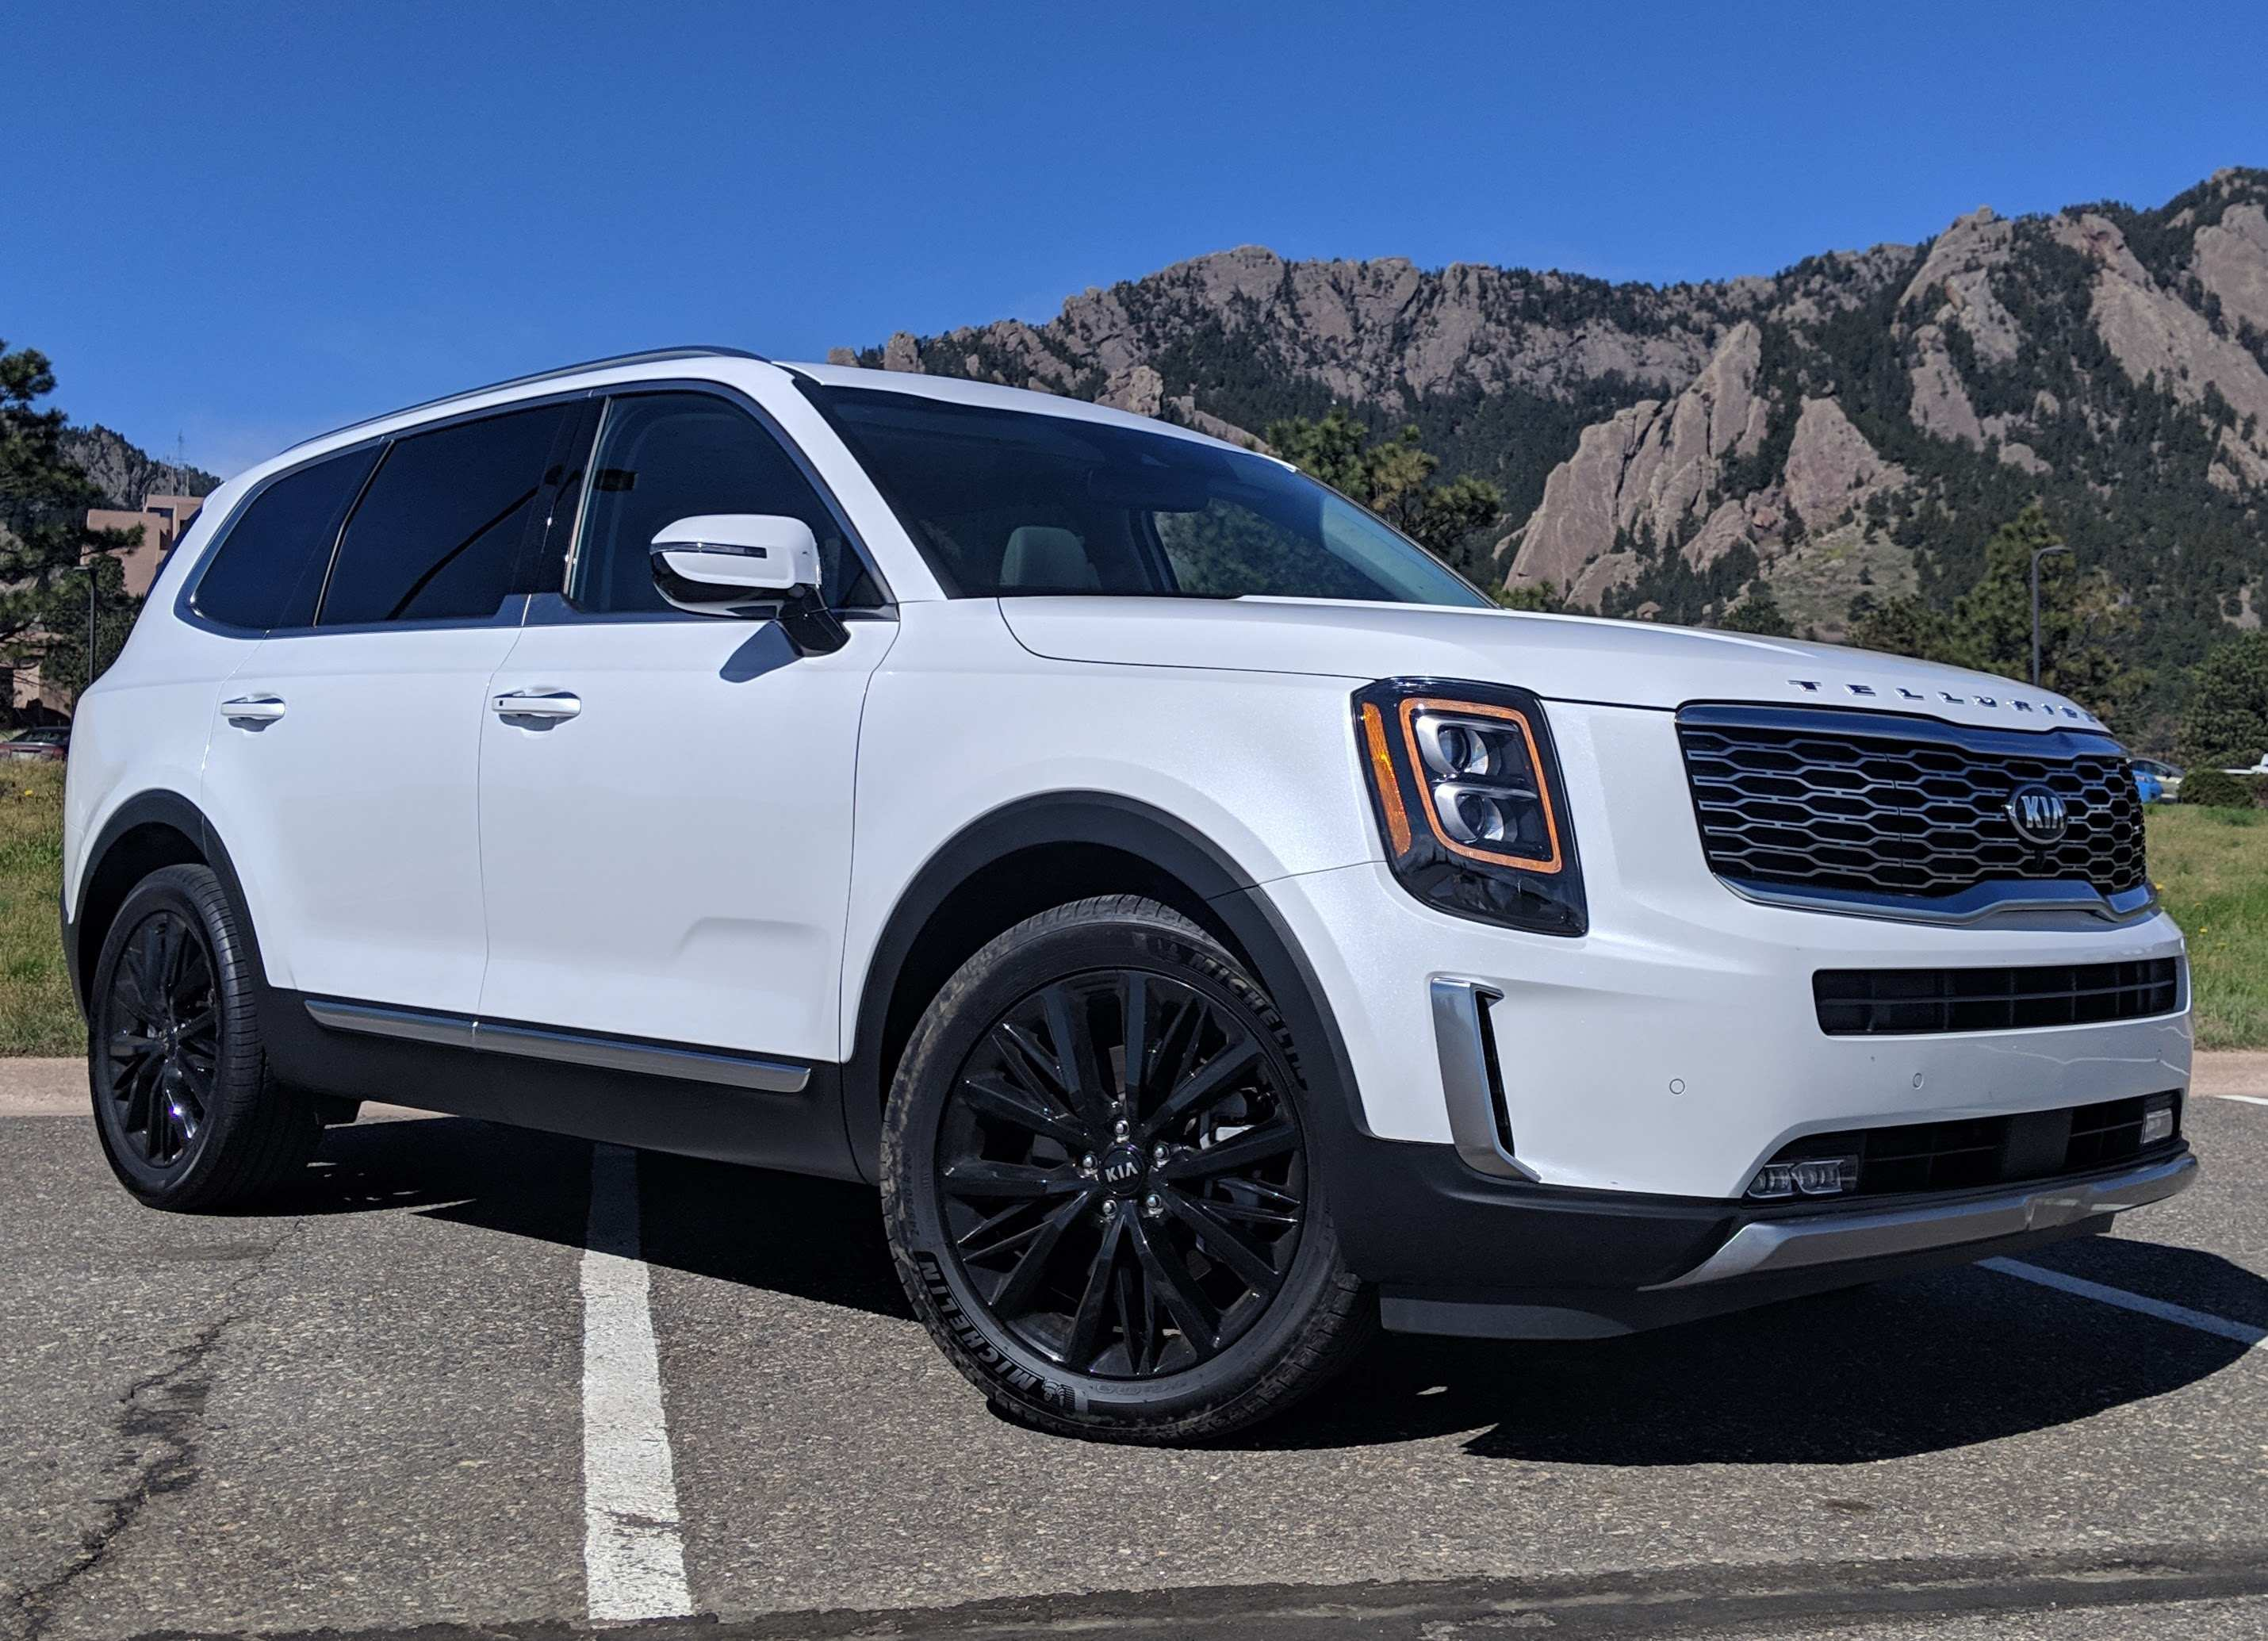 35 Gallery of 2020 Kia Telluride Mpg Spy Shoot by 2020 Kia Telluride Mpg